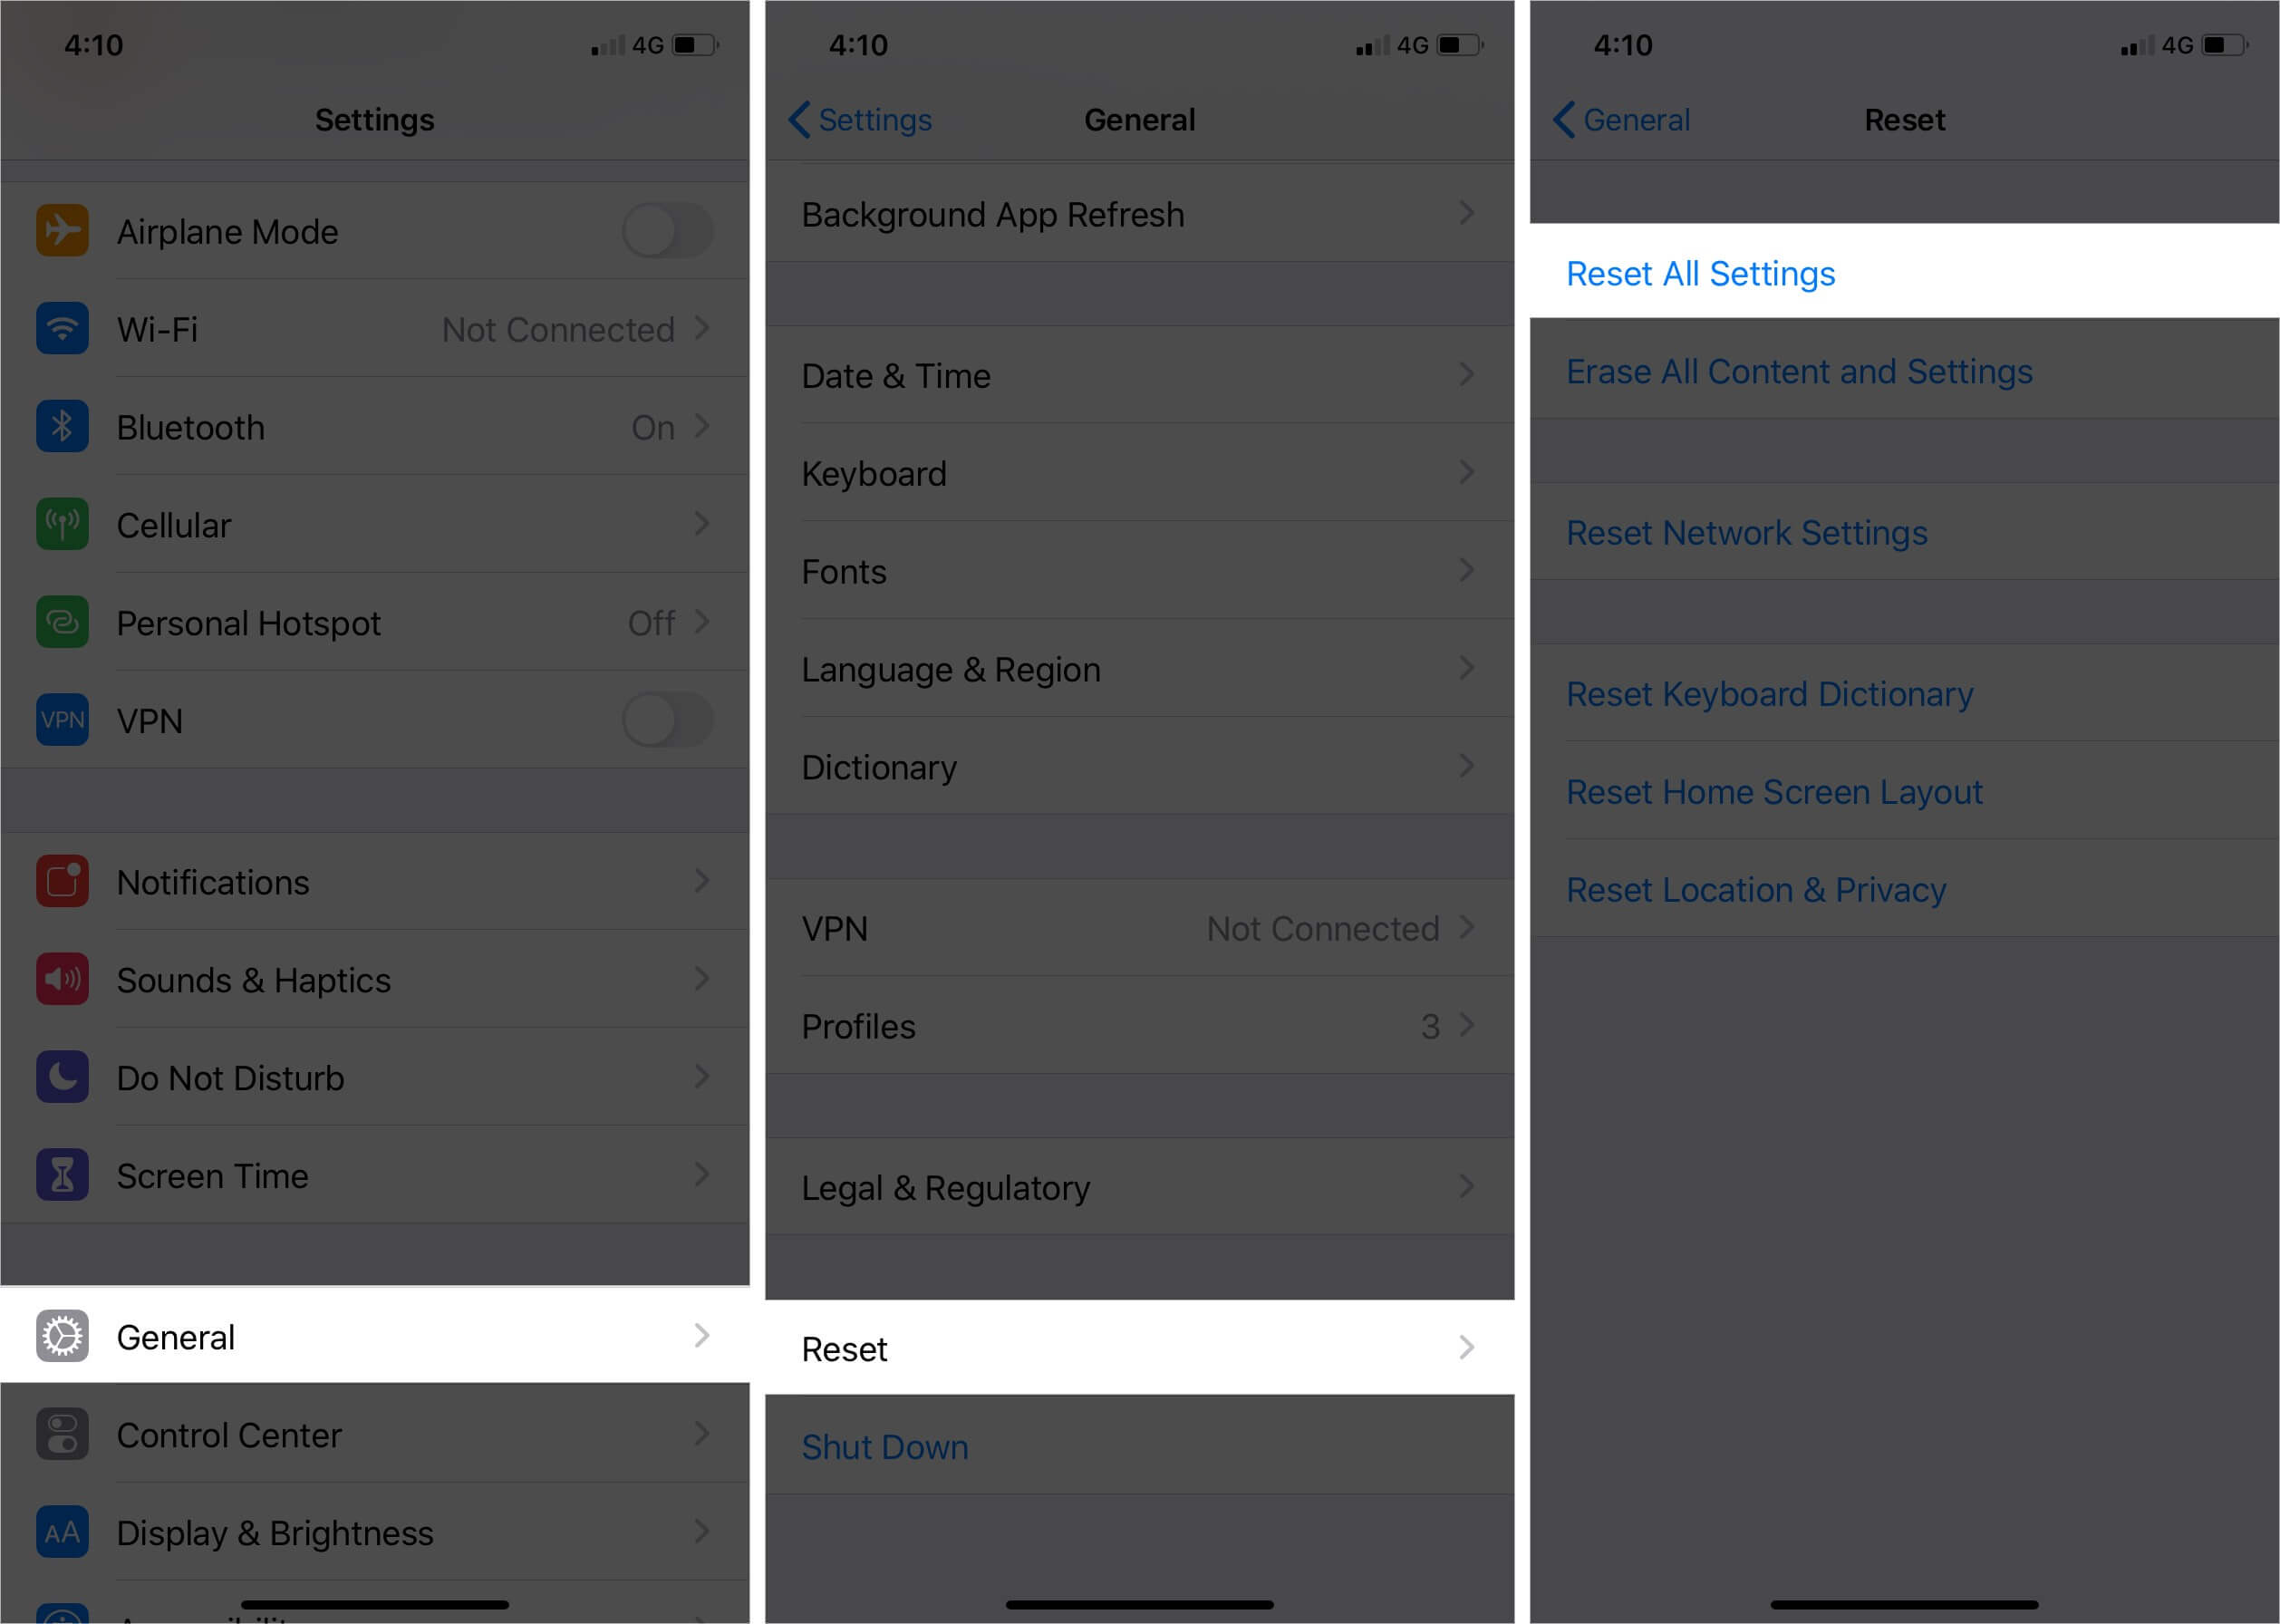 Reset All Settings on iPhone